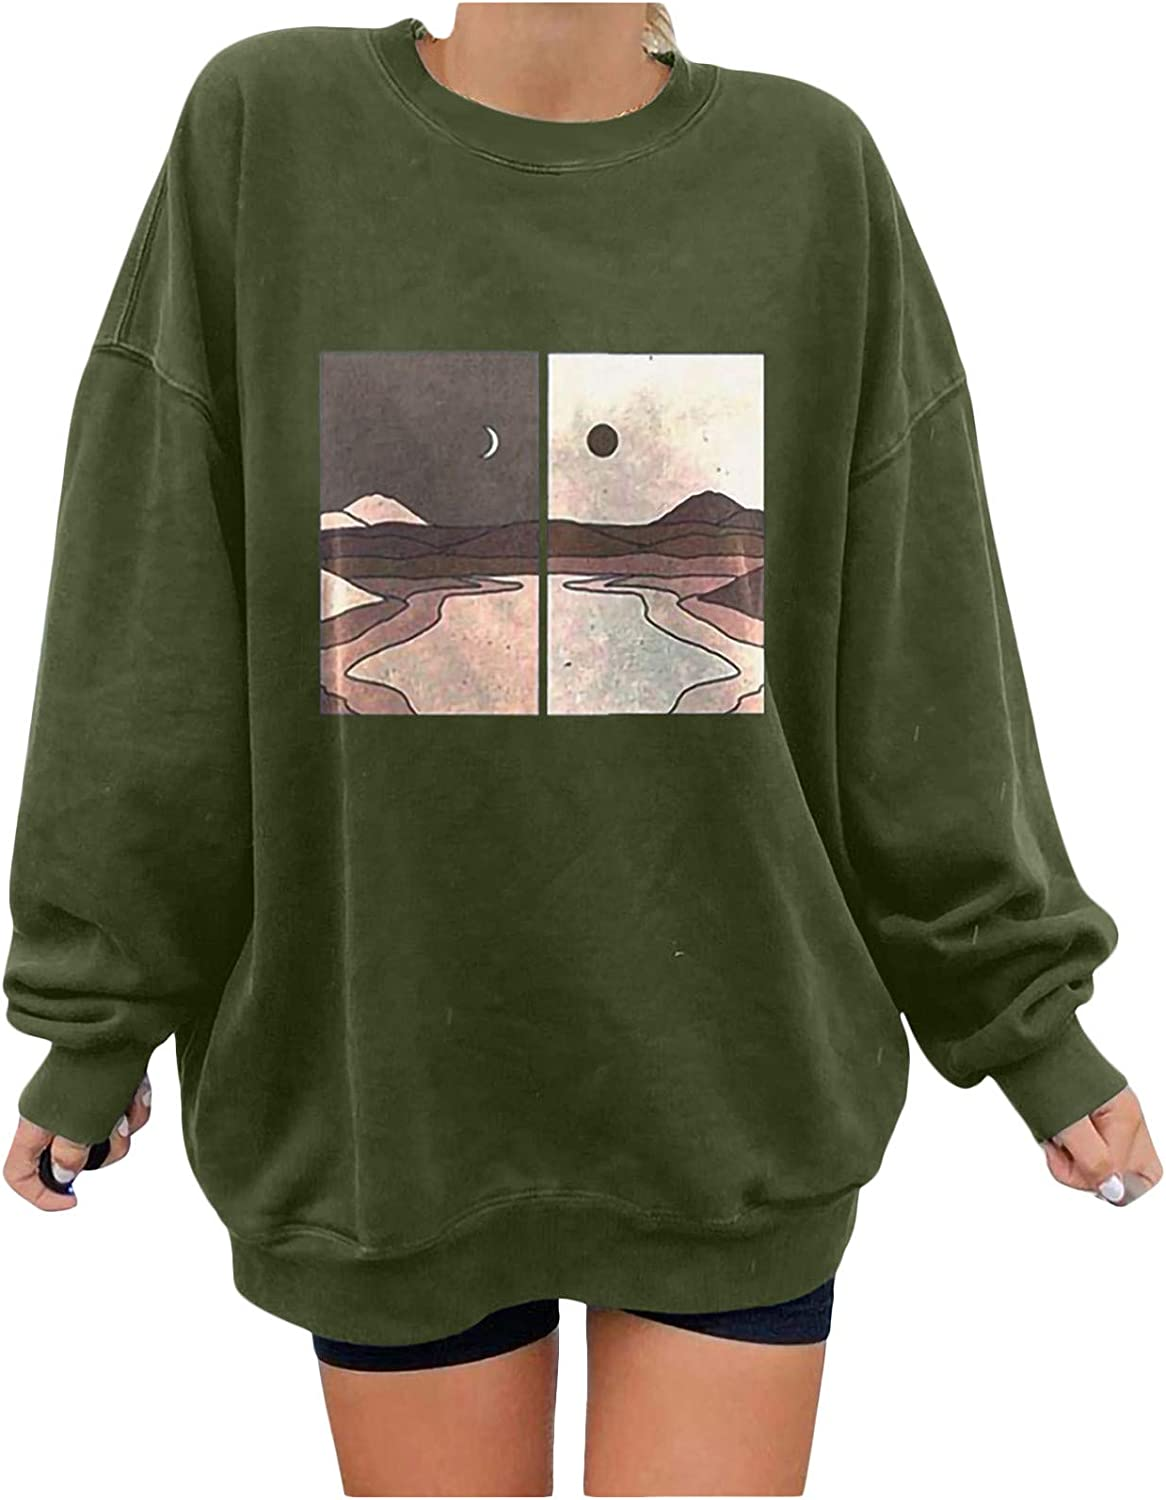 Aniwood Crewneck Sweatshirts for Women Vintage Oversized Fashion Printed Long Sleeve Hoodies Casual Loose Pullover Tops